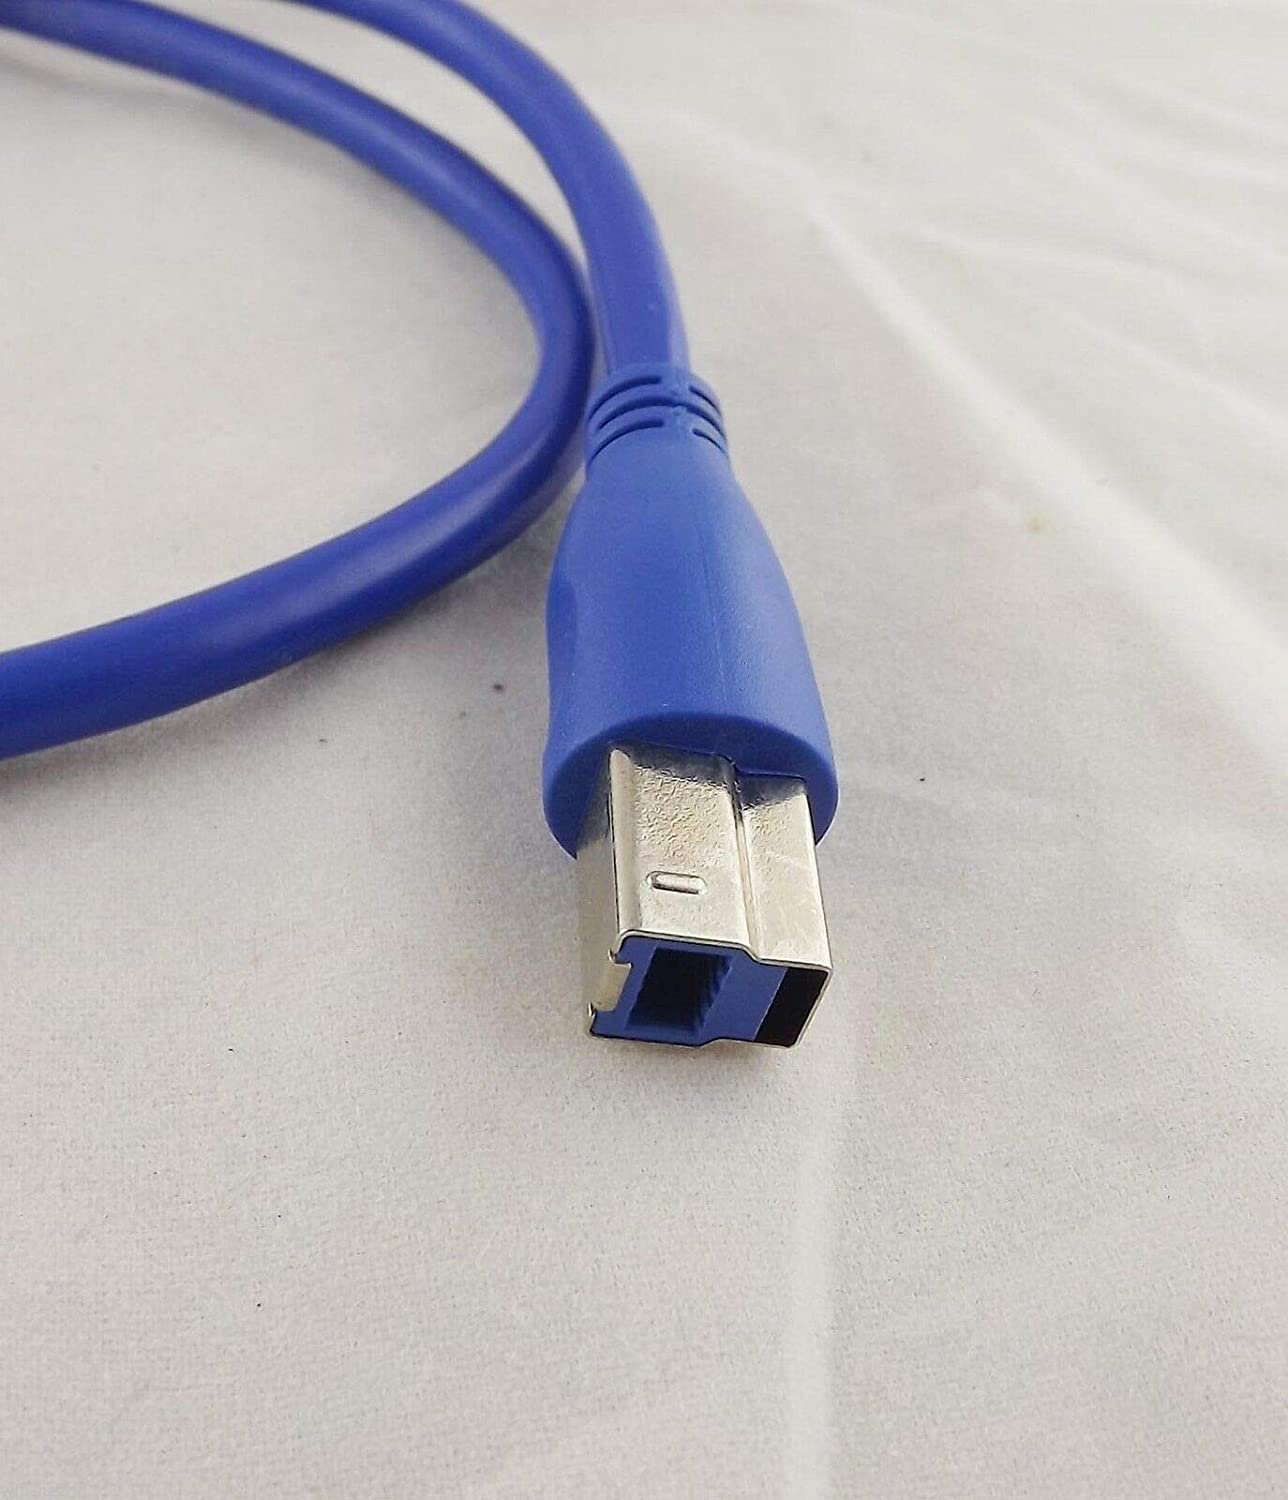 Connector and Terminal /1x USB 3.0 Type A Male Plug to B Male Printer Scanner Data Wire Cord Cable 1.5ft